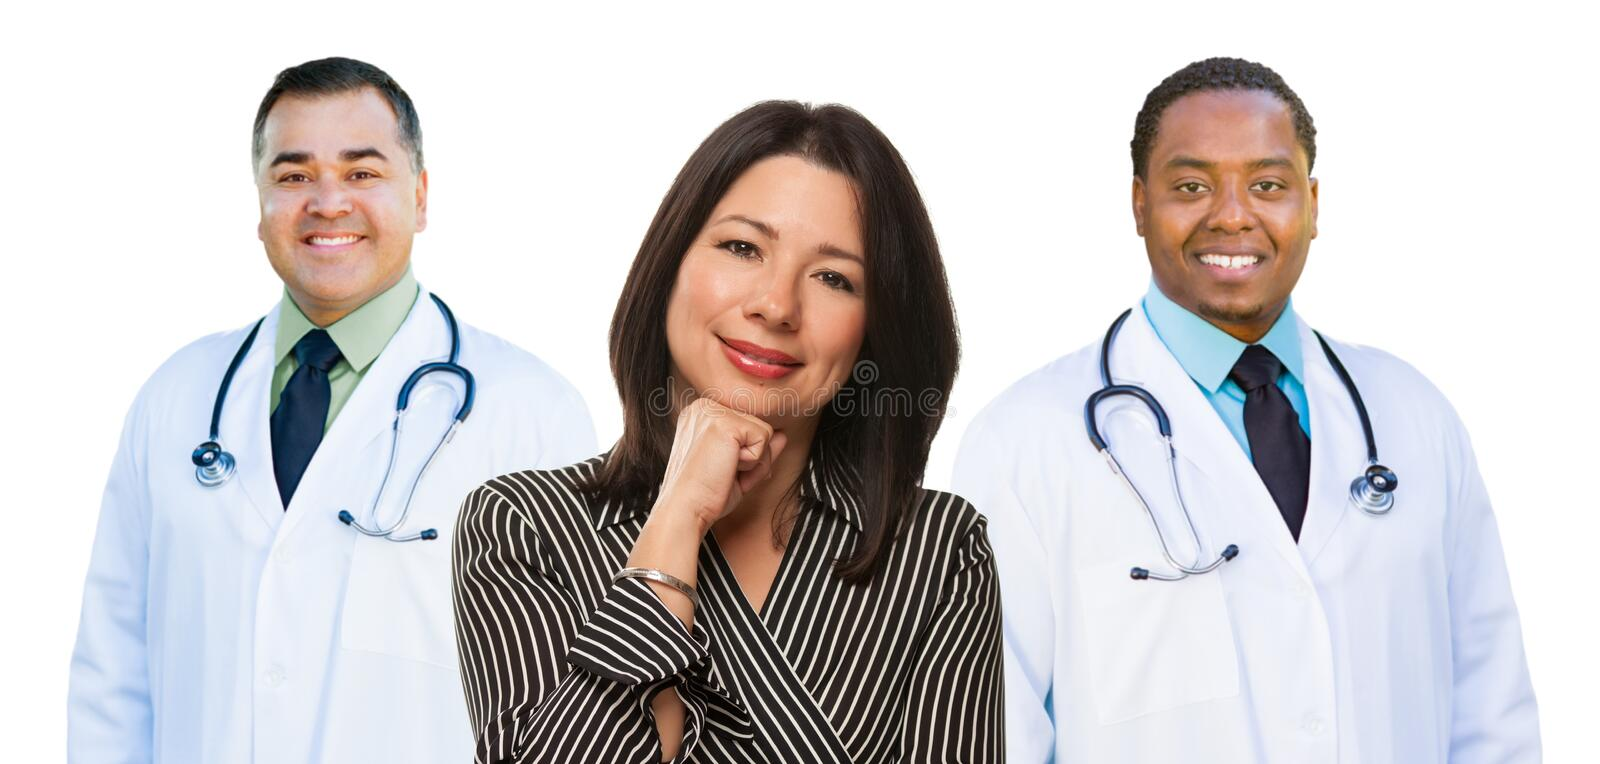 Three Mixed Race Doctors Behind Hispanic Woman on White. Mixed Race Doctors Behind Hispanic Woman Isolated on a White Background stock images